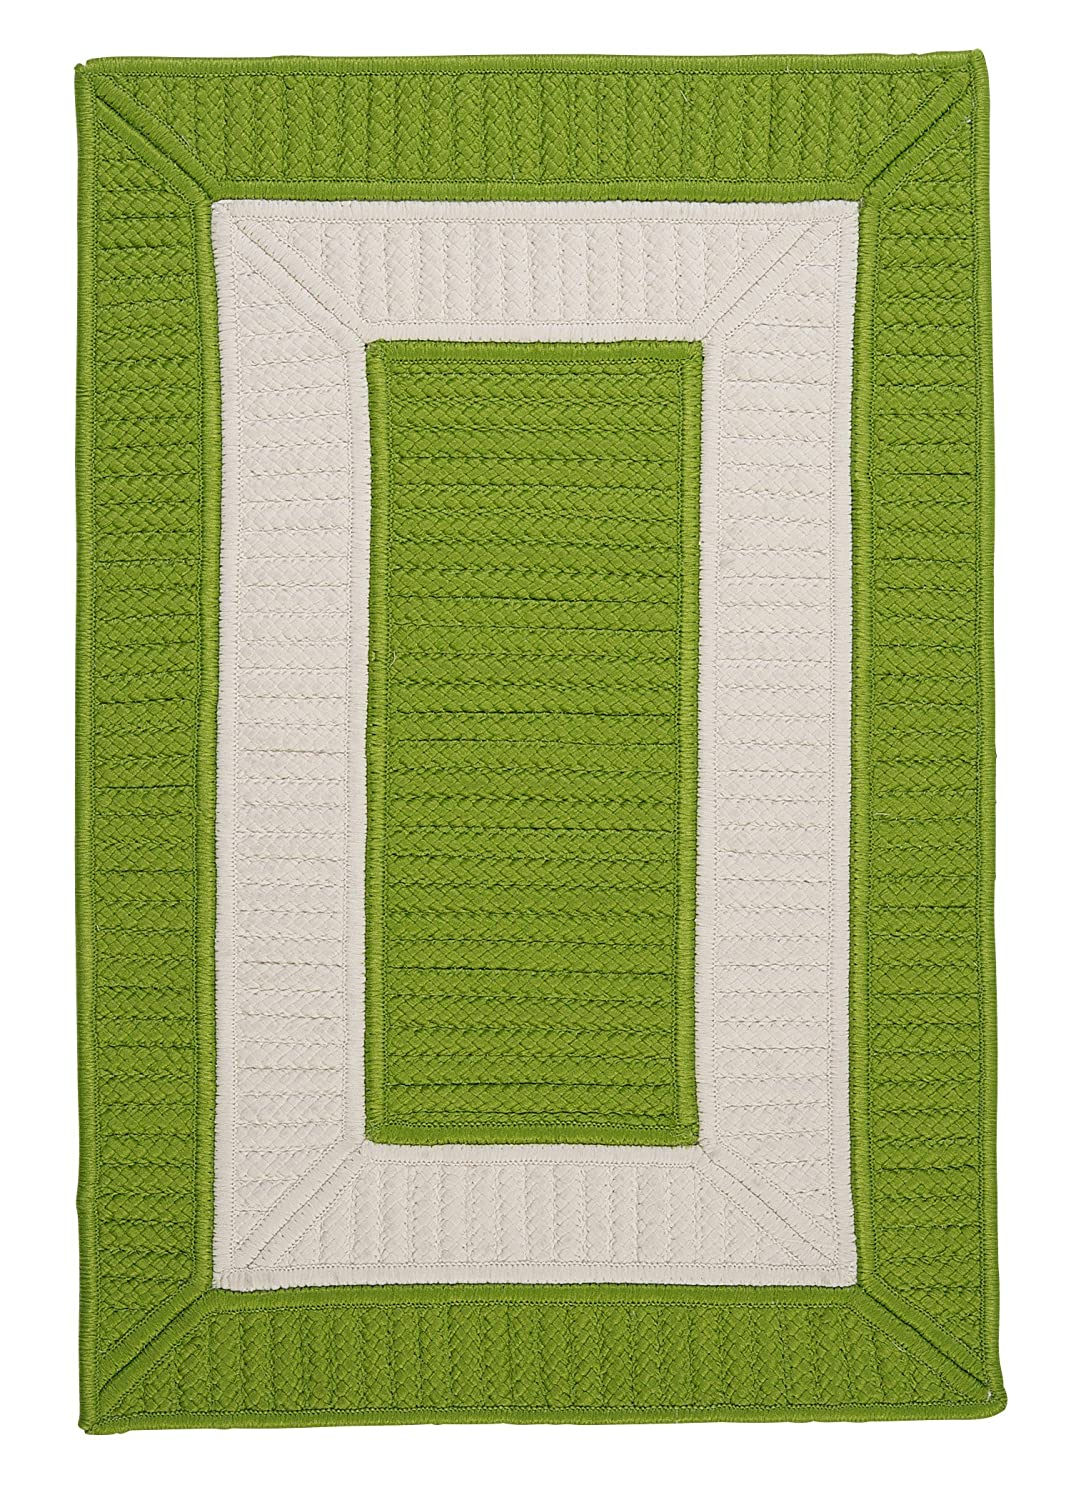 Rope Walk CB91SAMPLES Sample Swatch Rugs, 14 x 17, Bright Green